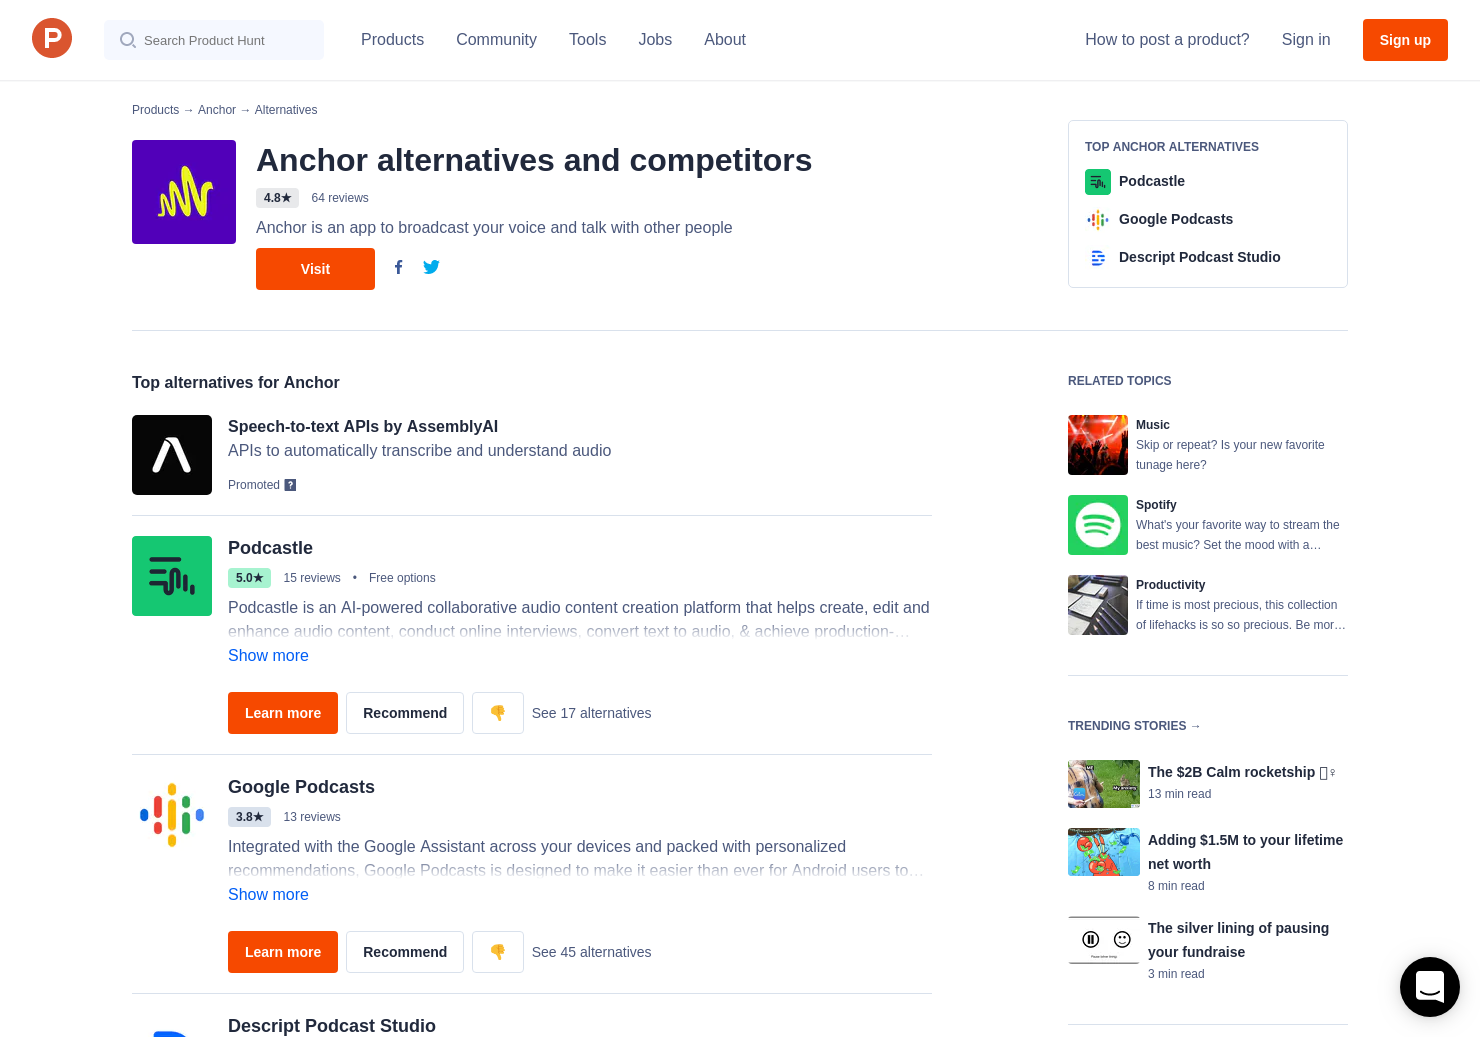 16 Alternatives to Anchor 2 0 for Android, iPhone | Product Hunt